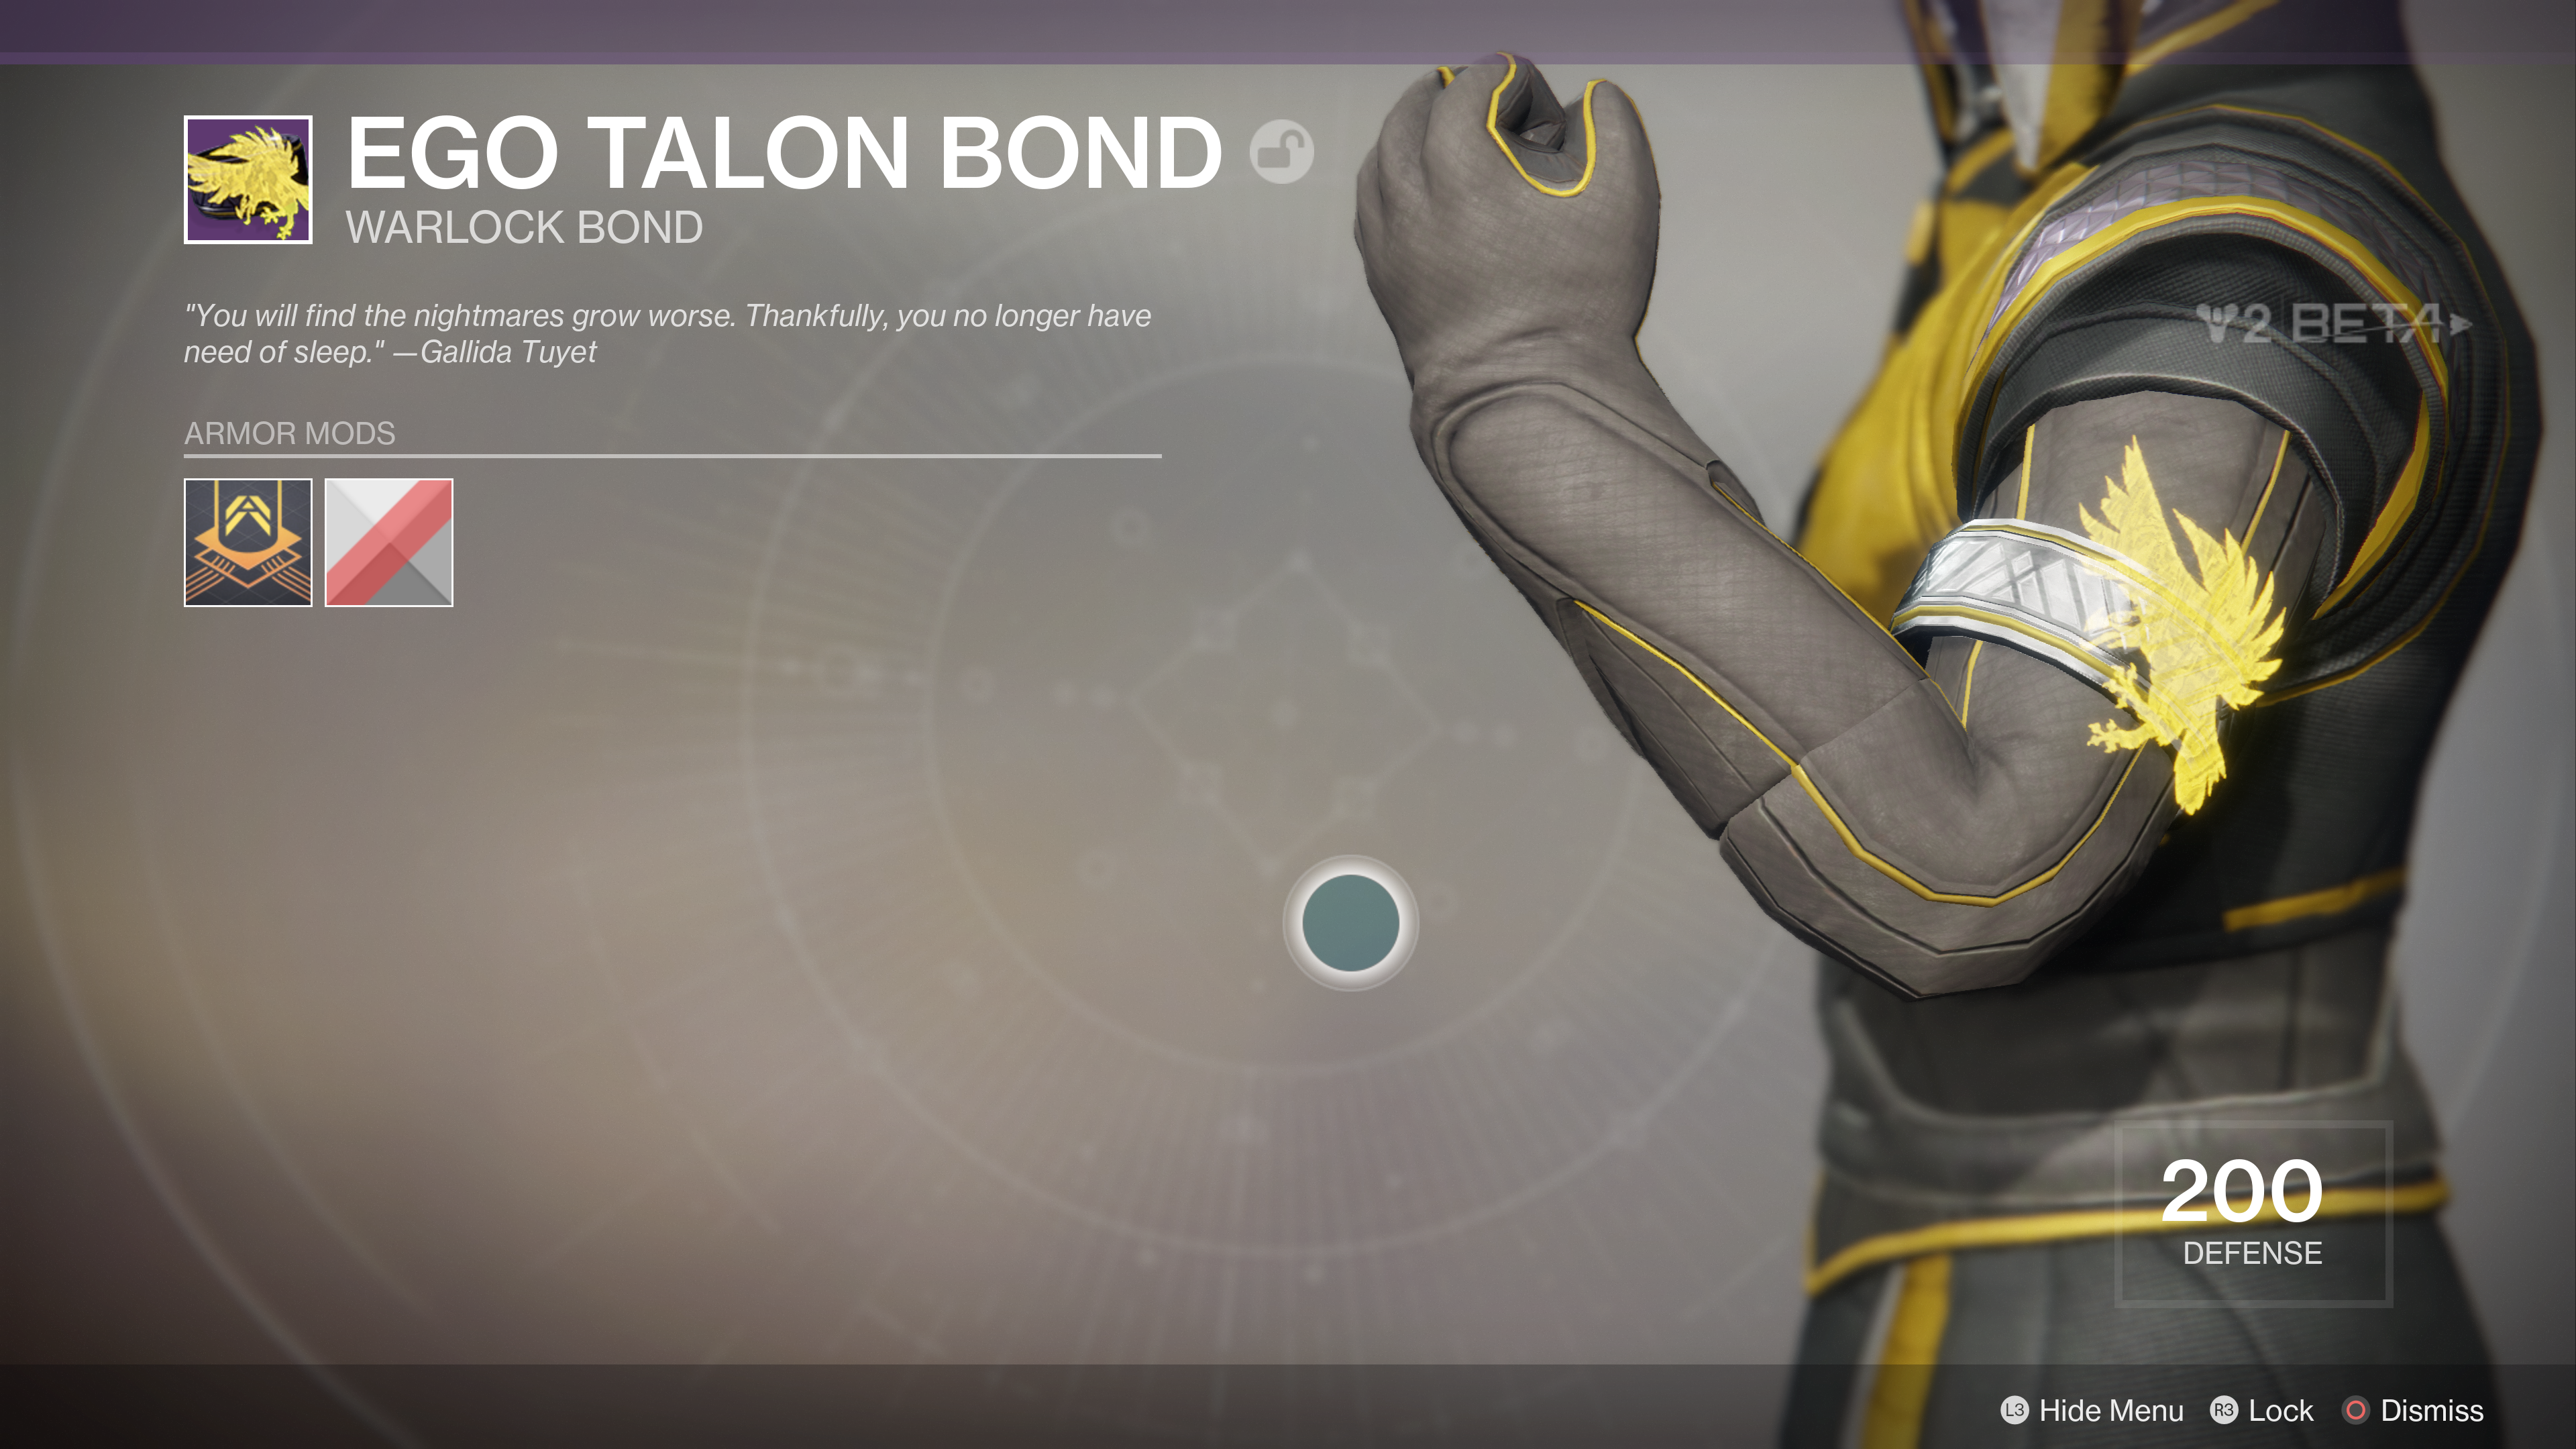 destiny 2 beta ego talon bond